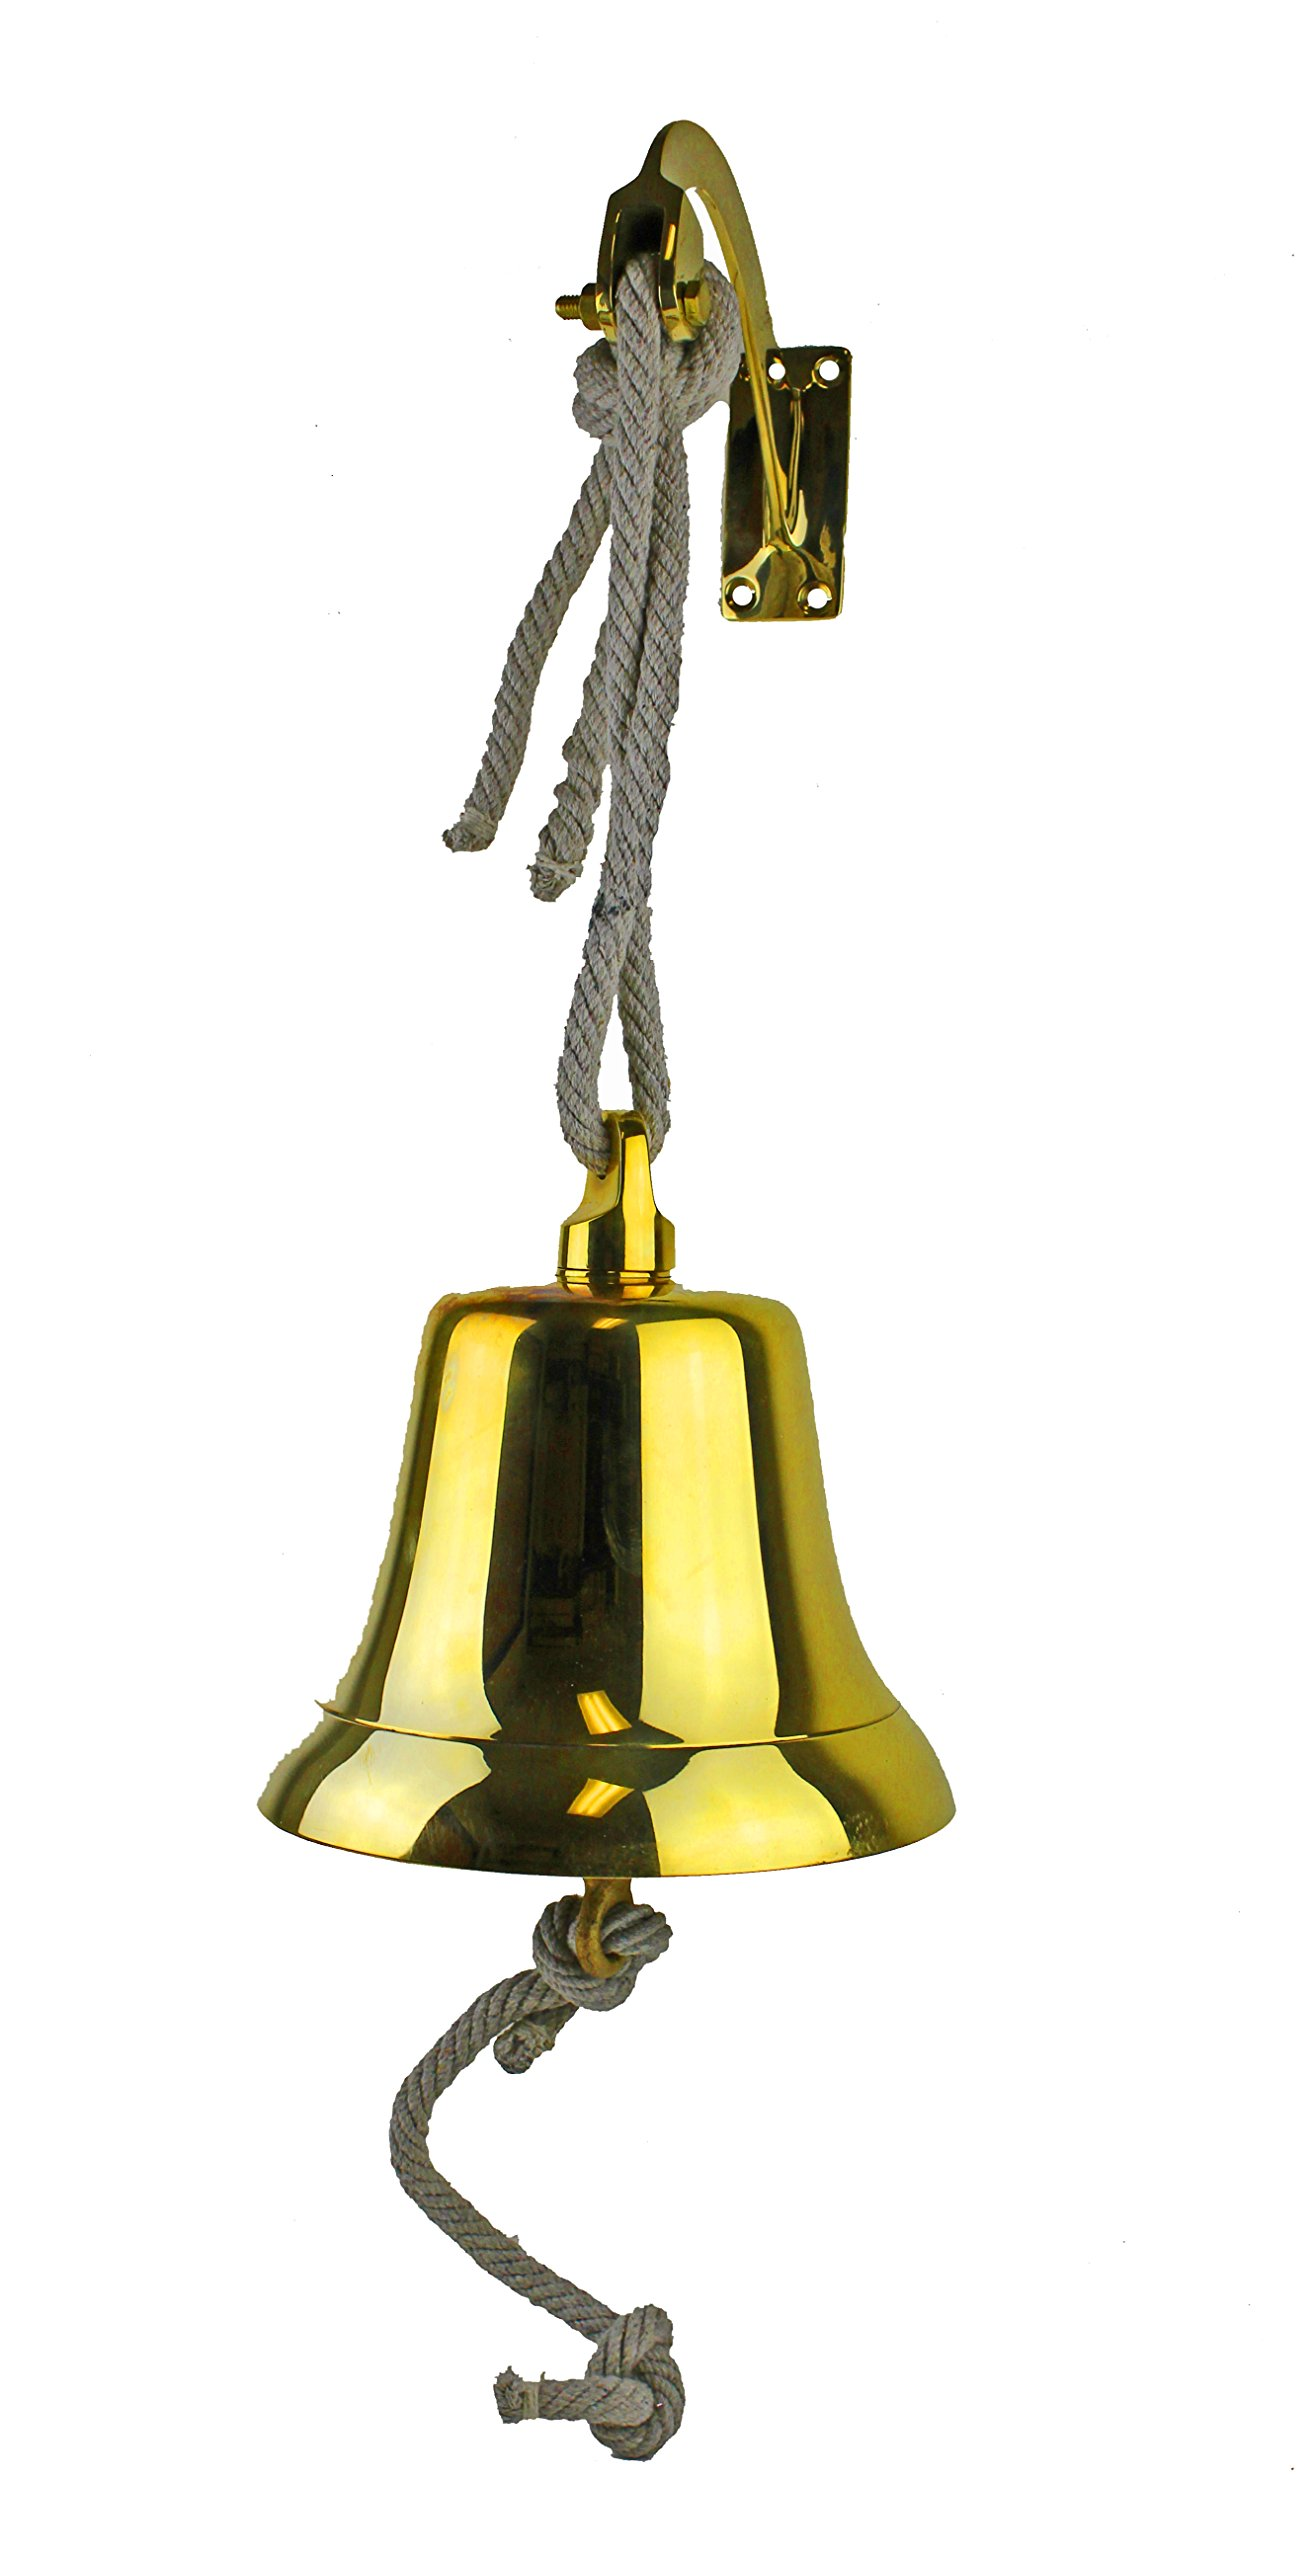 10''H Solid Brass Hanging Rope Bell with Bracket by Nautical Tropical Imports